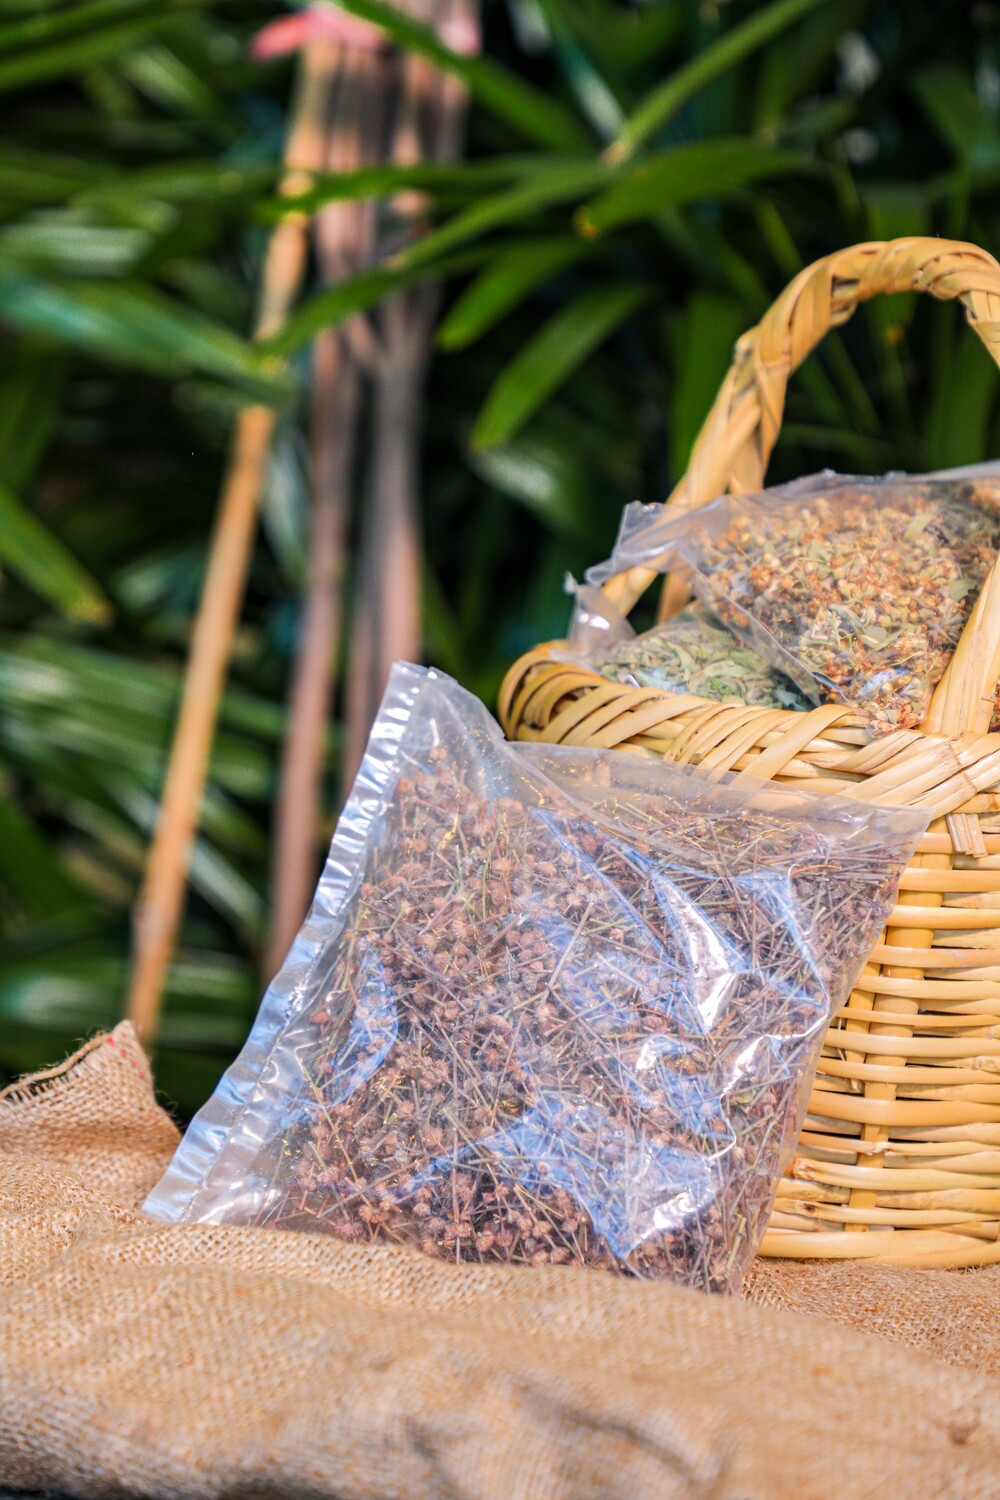 Micromeria (Micromeria myrtifolia) (Bag) - Nature by Marc Beyrouthy